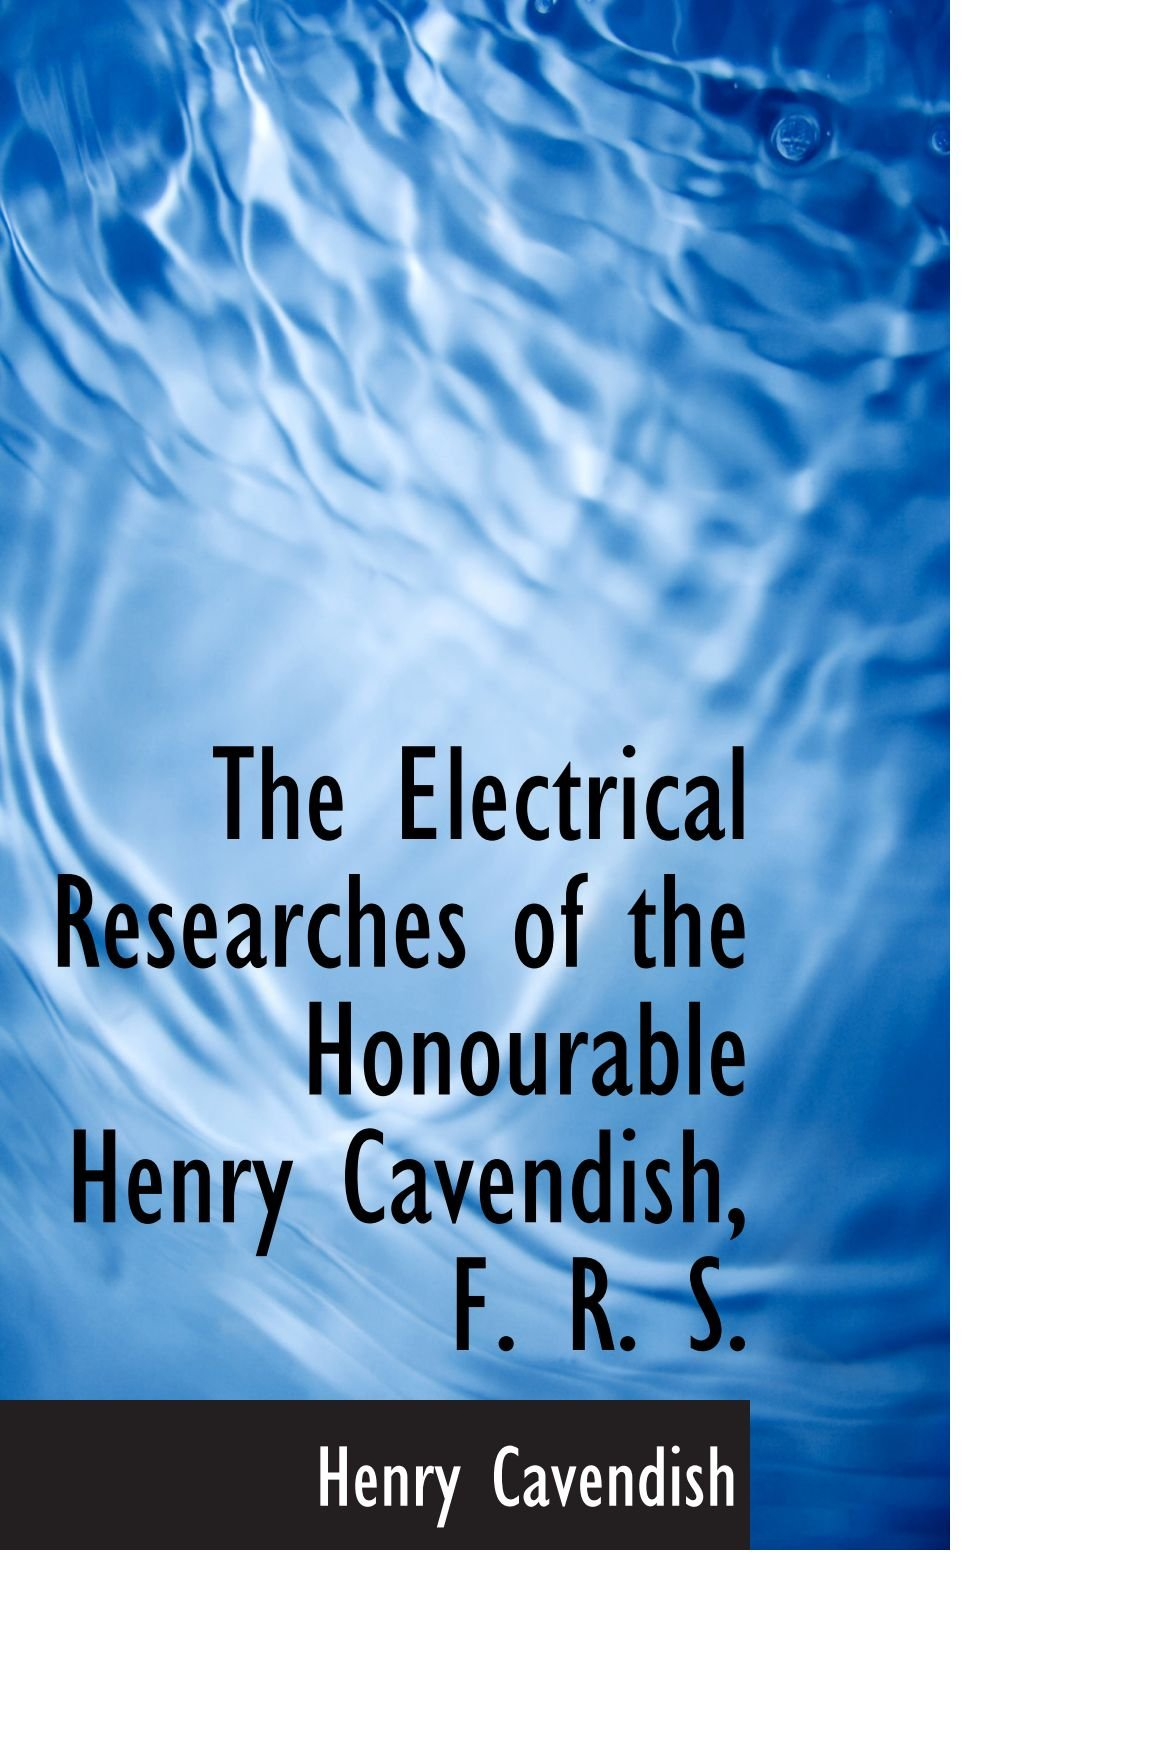 The Electrical Researches of the Honourable Henry Cavendish, F. R. S. pdf